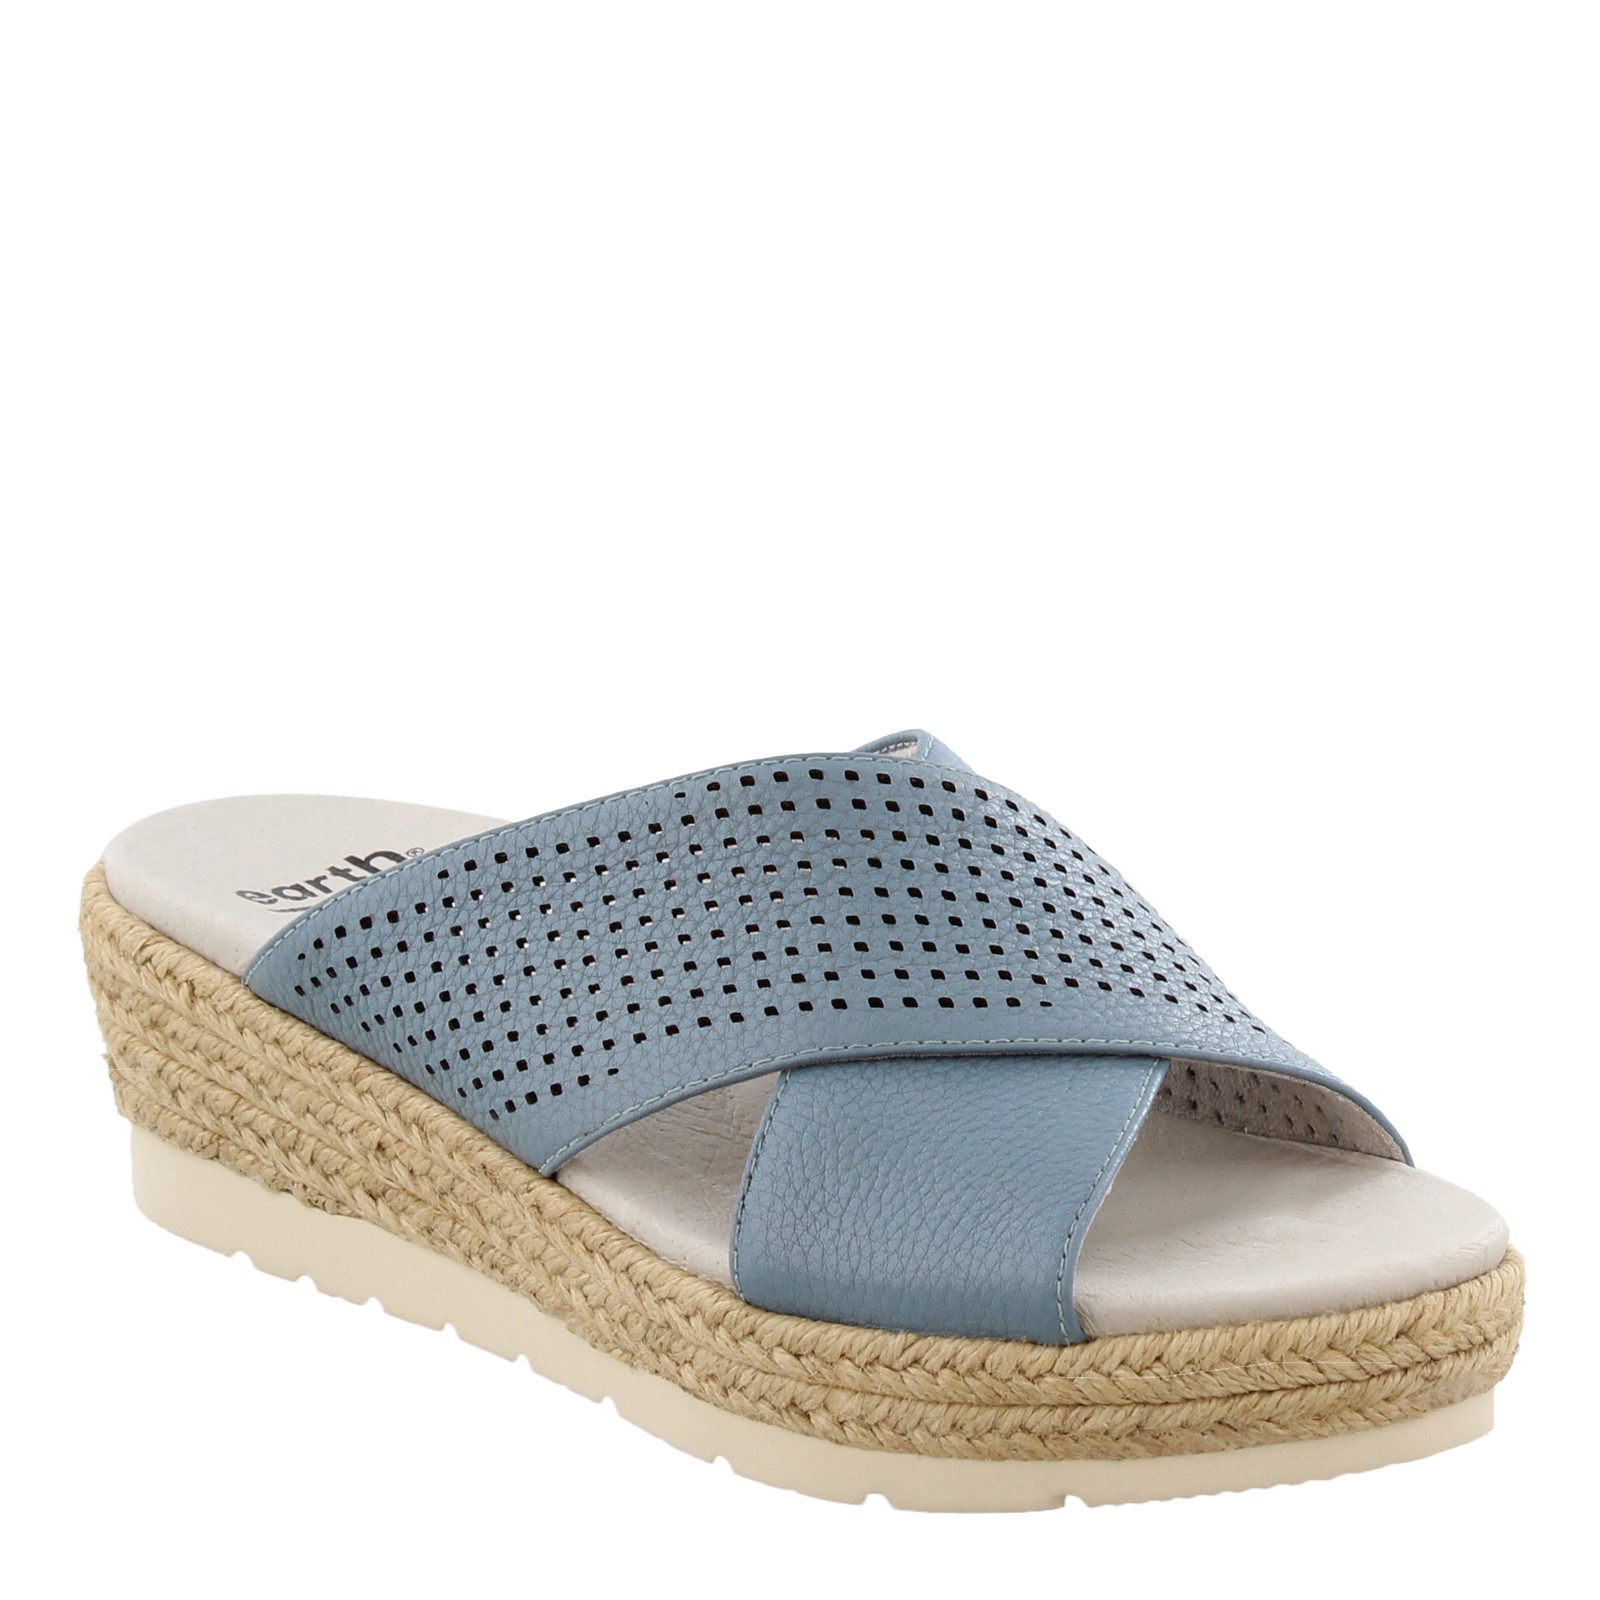 Women's Earth, Marigold Slide